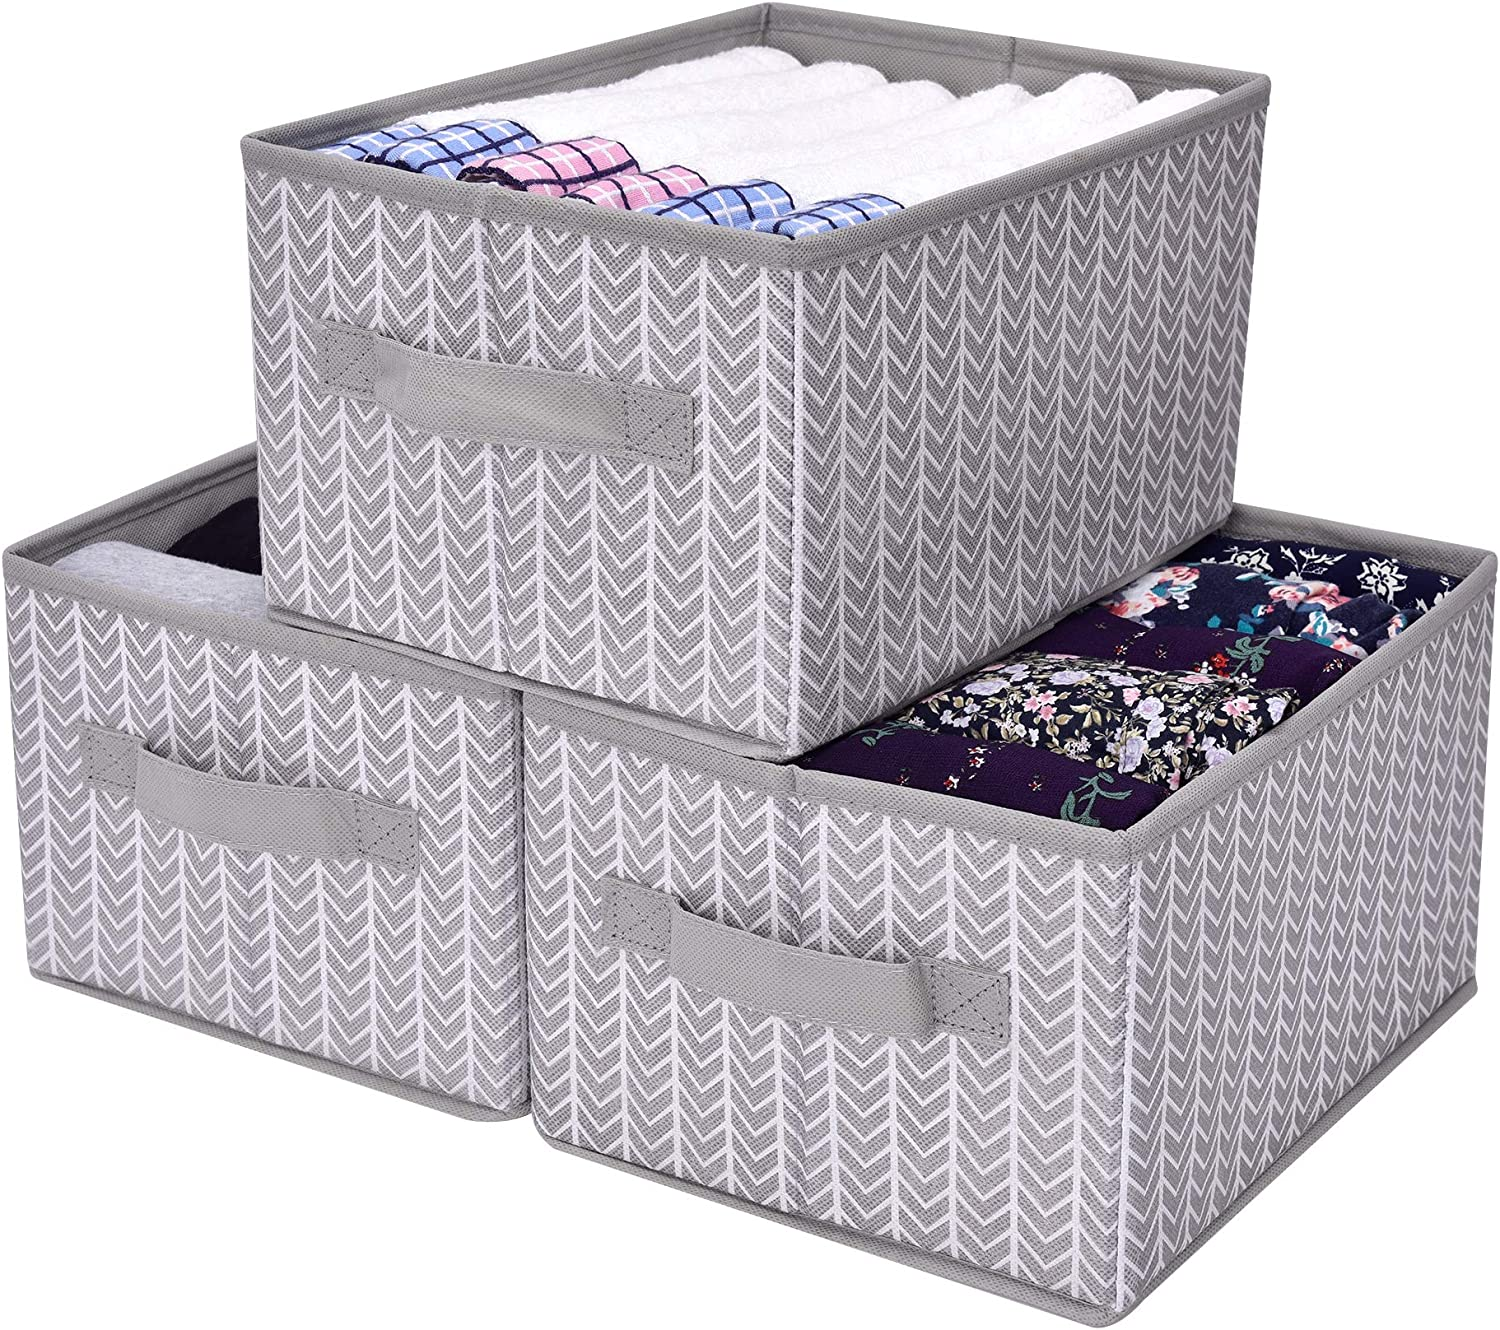 GRANNY SAYS Storage Baskets for Shelves 3-Pack Gray Cloth Organizer Bins with Handles for Home Closet Bedroom Drawers Organizers